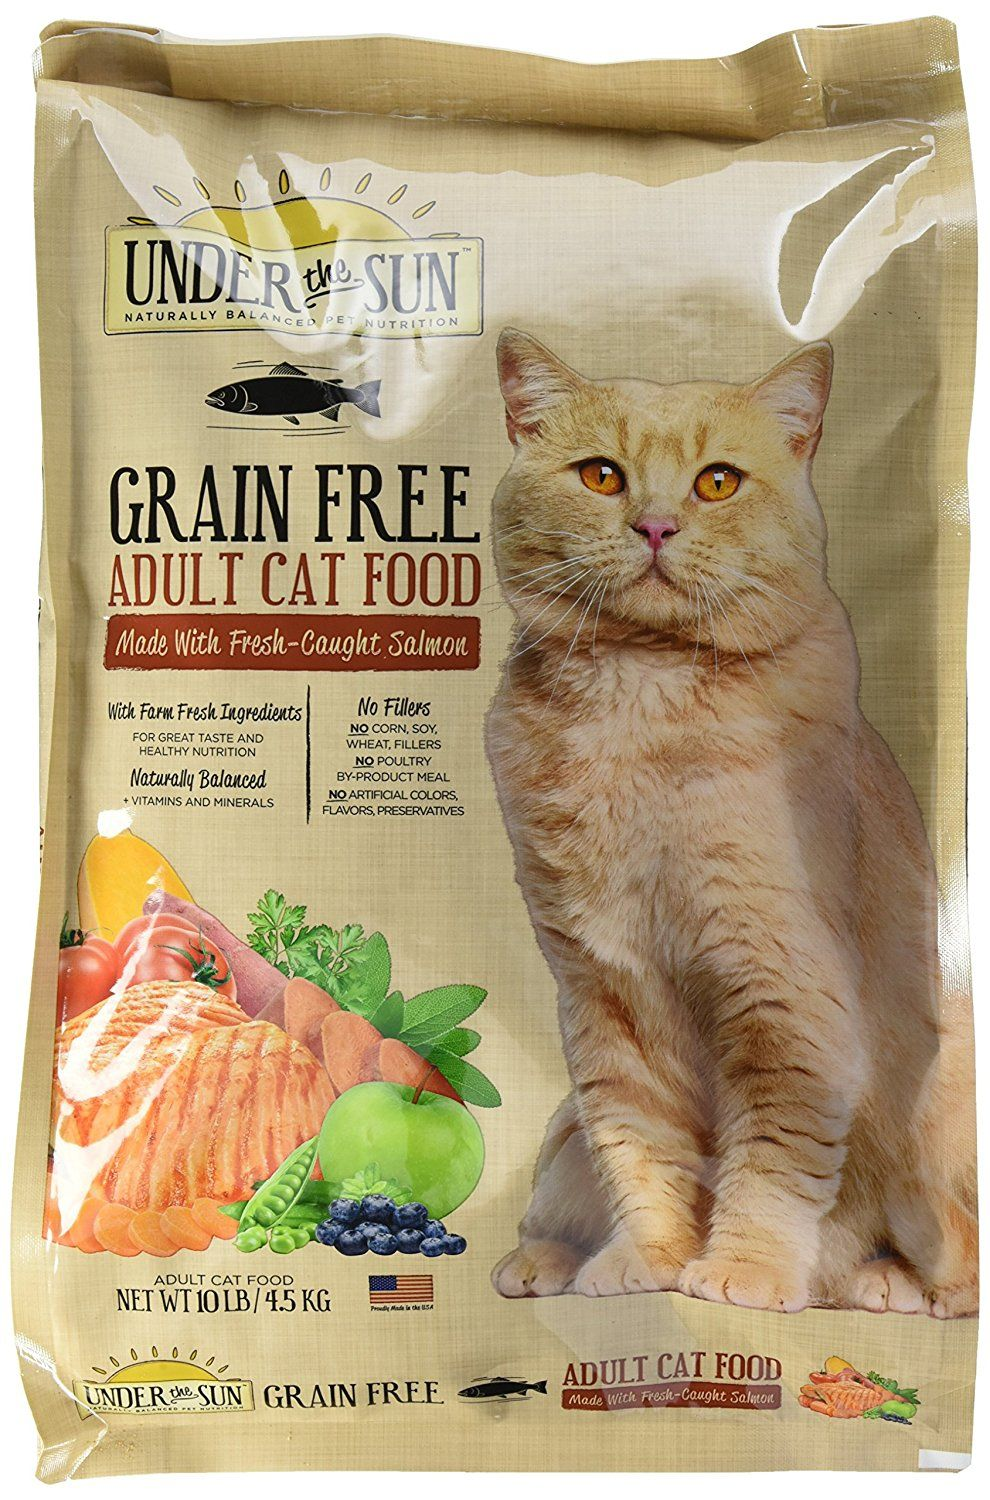 Under The Sun Grain Free Dry Cat Food You Can Get More Details Here Best Cat Food Dry Cat Food Best Cat Food Cat Food